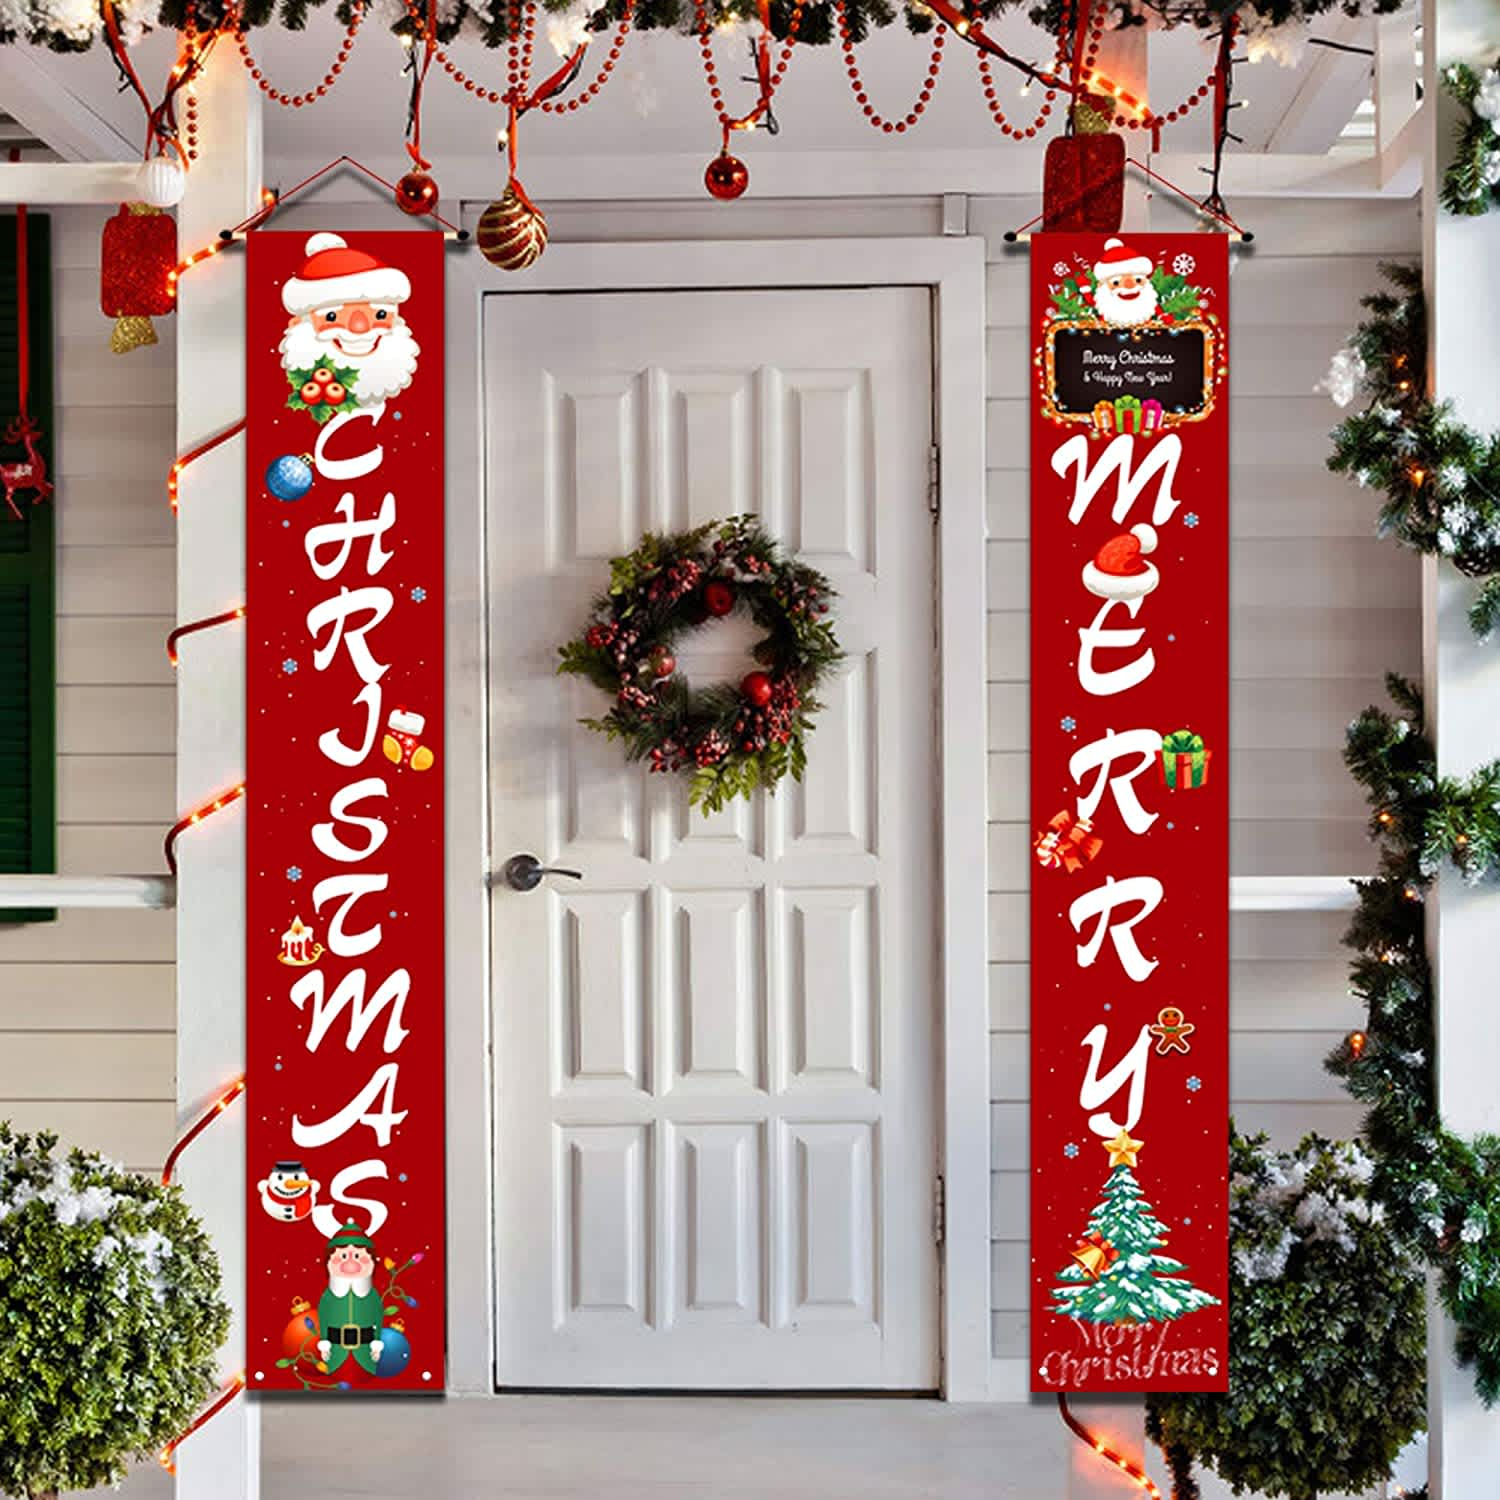 Yufol Outdoor Christmas Banner Decorations 2-Pack